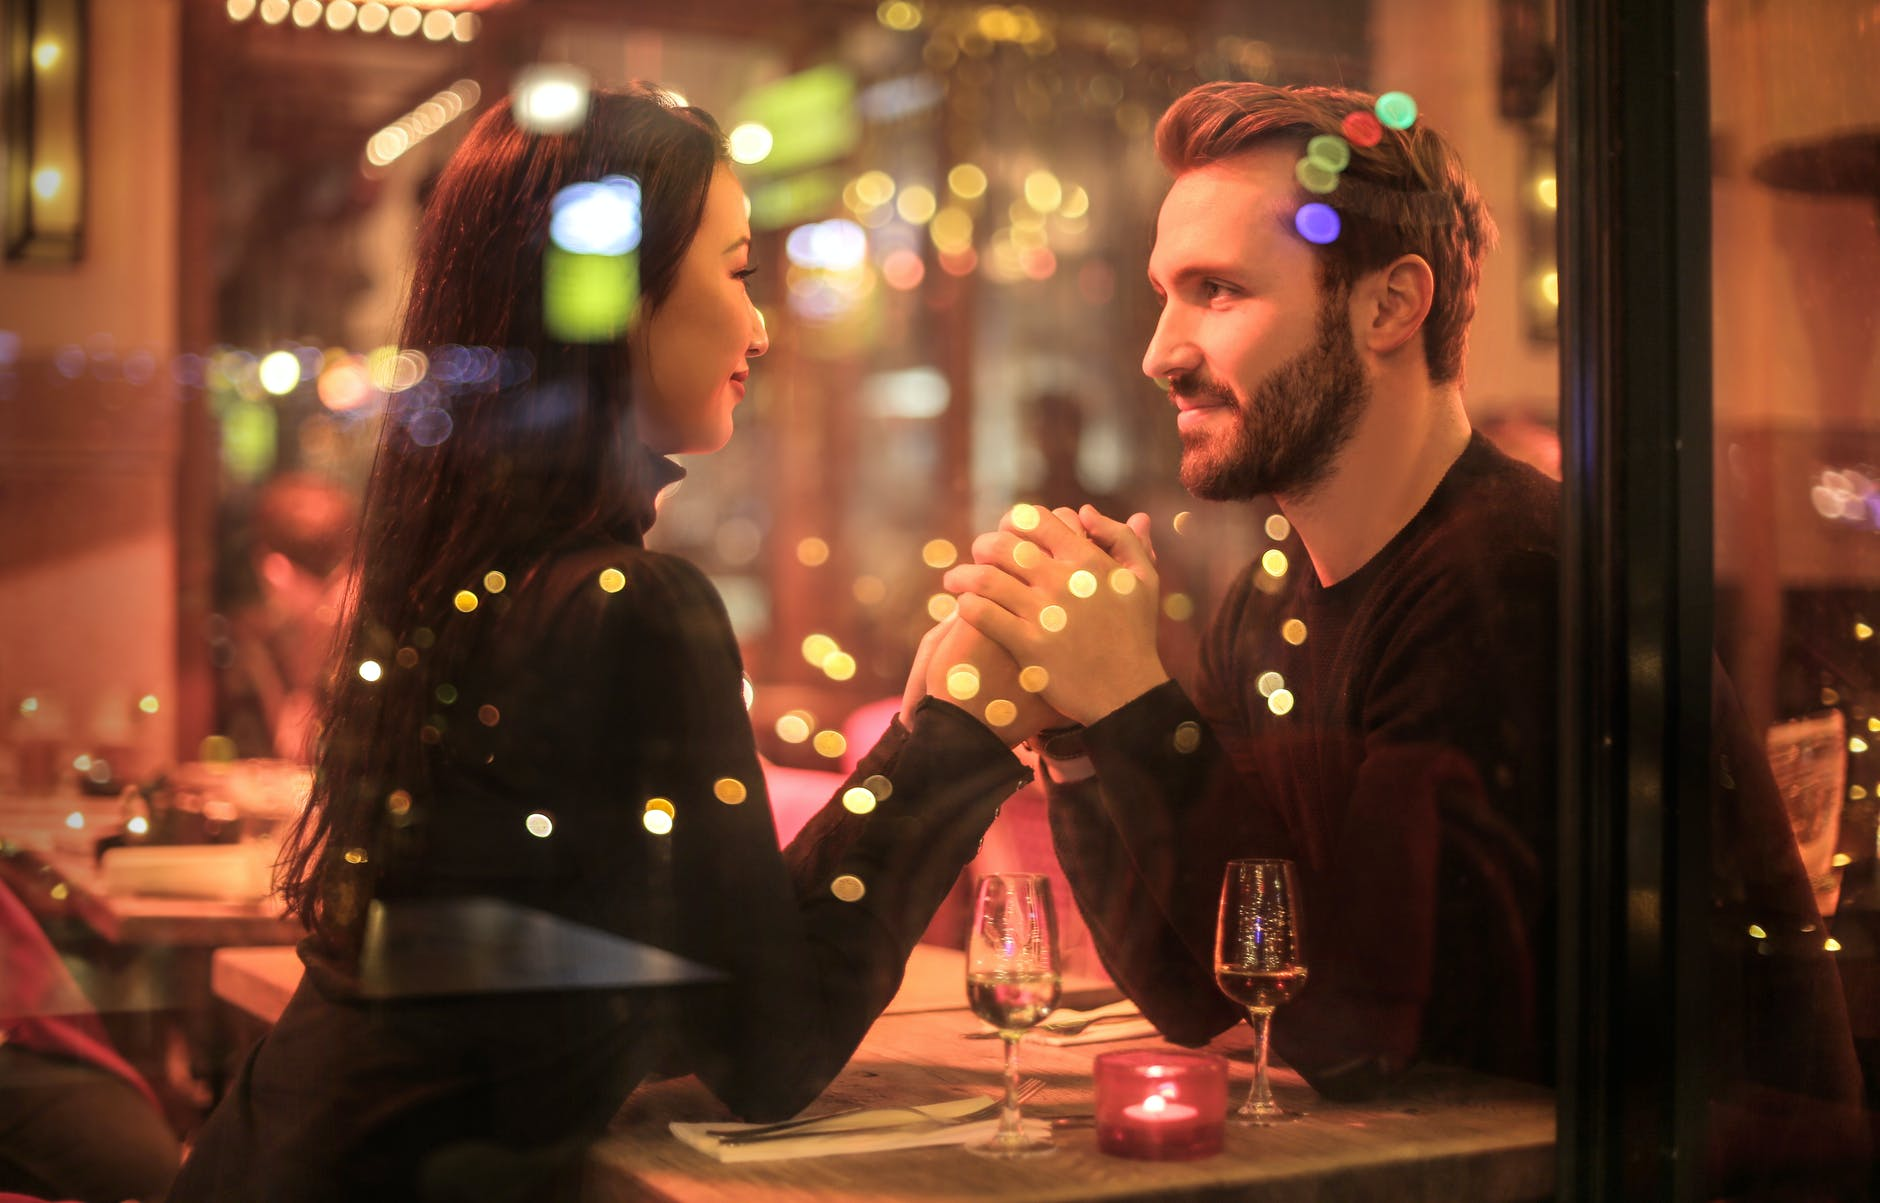 5 Factors That Are Absolutely Necessary for a Healthy Dating Relationship